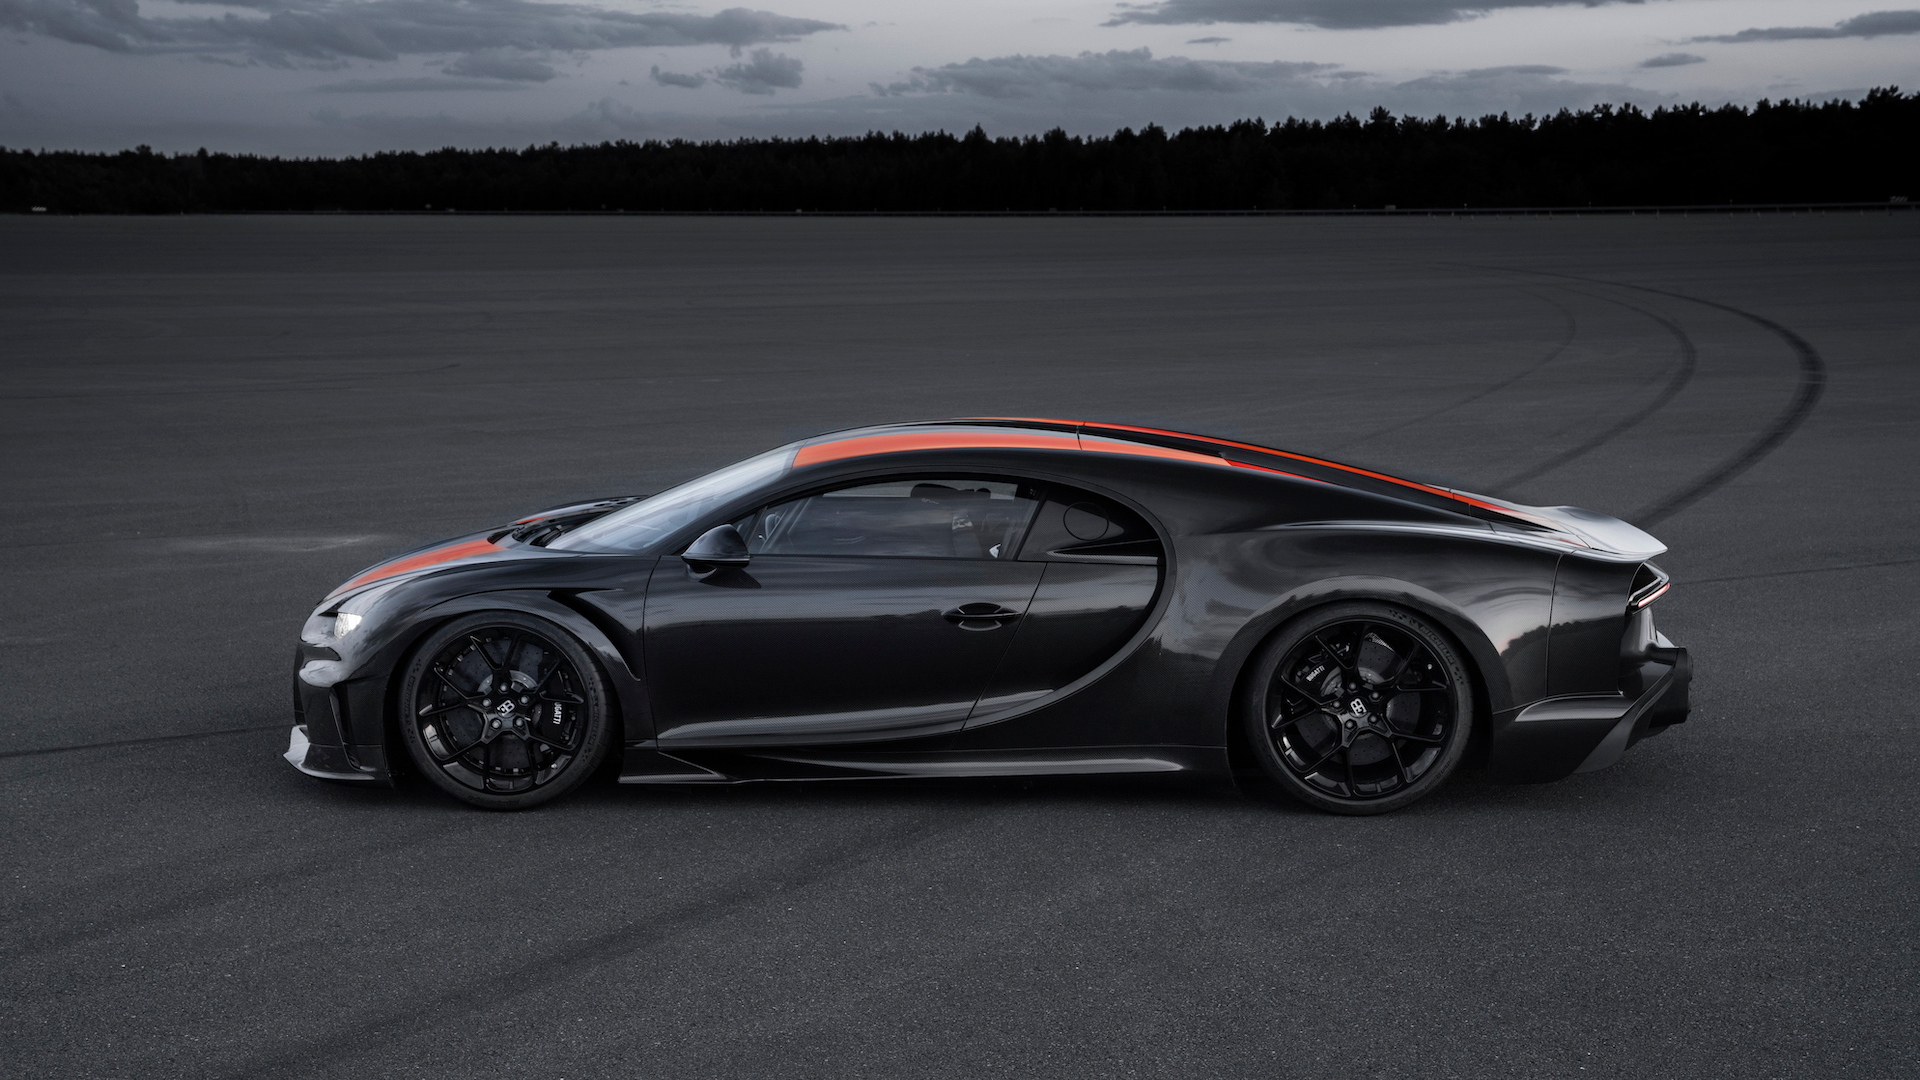 Bugatti Chiron production prototype derivative hits 300 mph